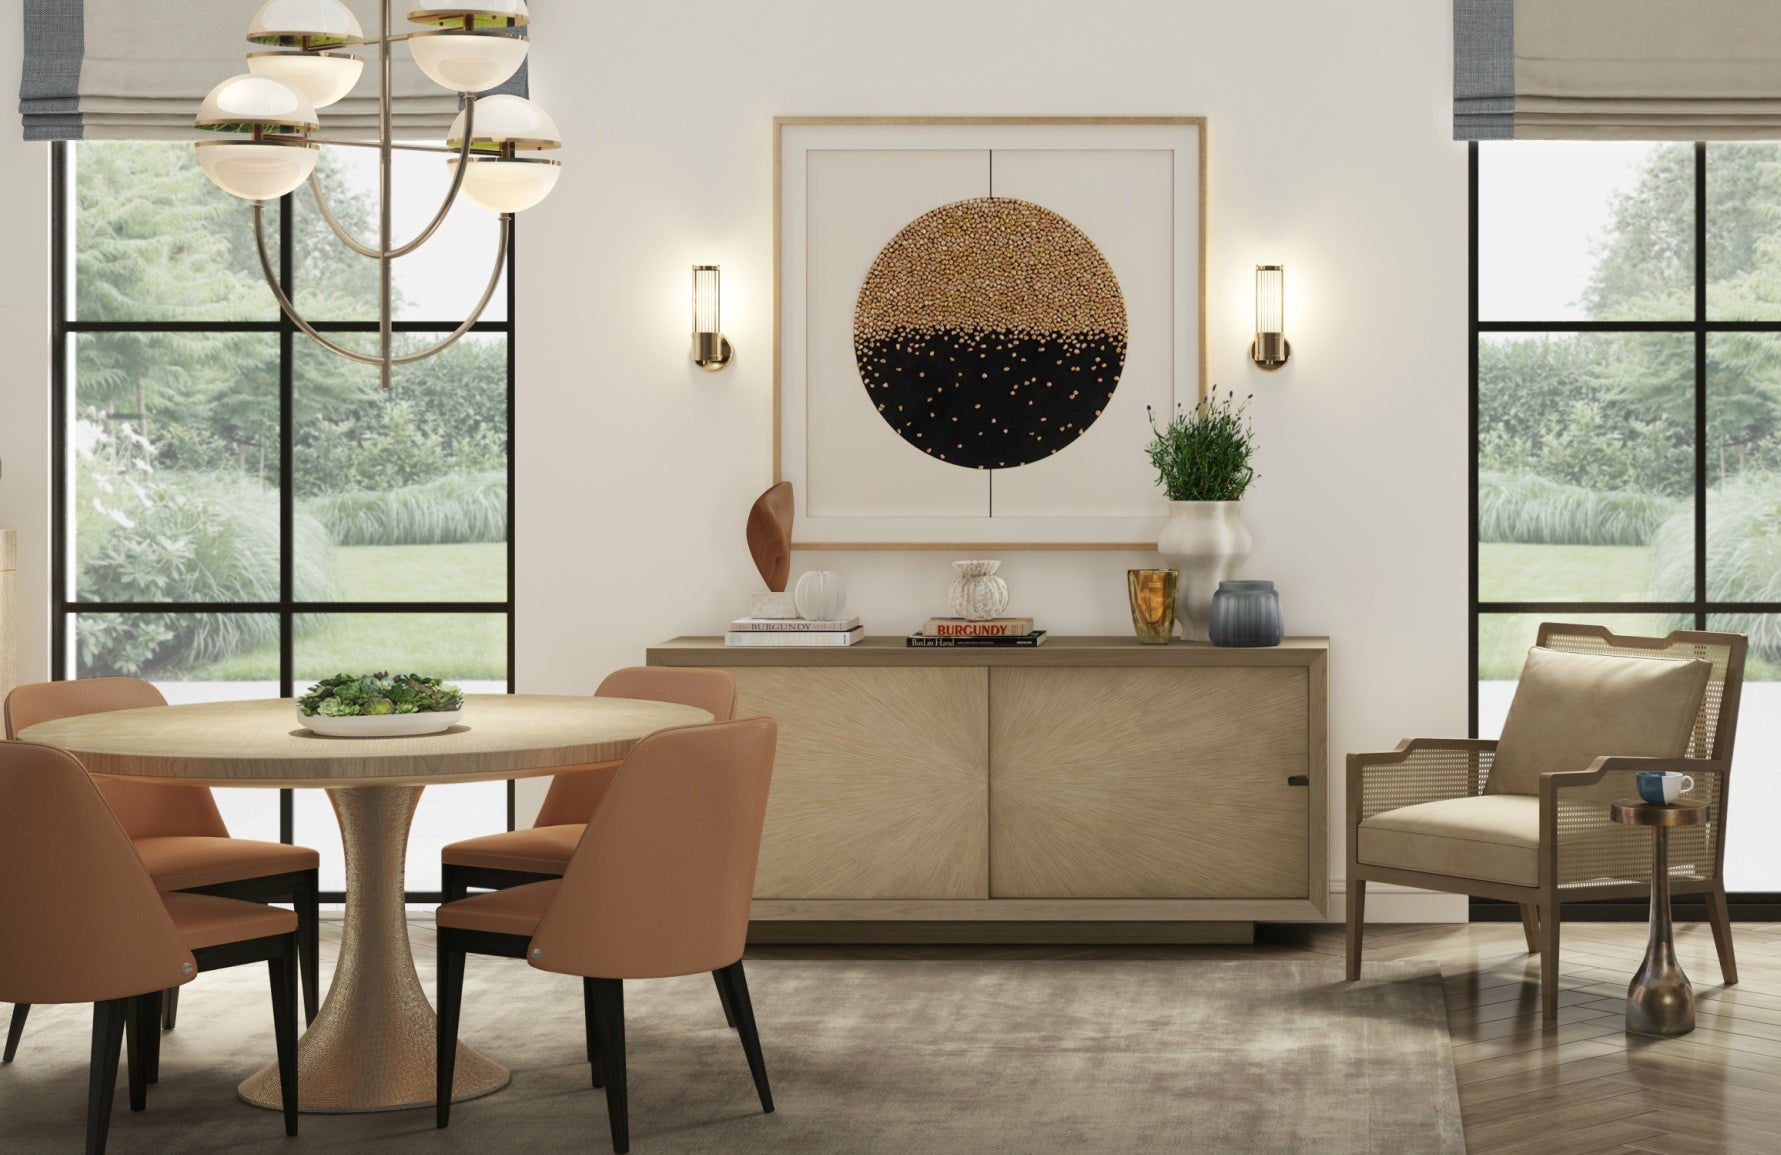 Informal Contemporary Dining Room _ Luxury Interior Design _ Shop our Wimbledon Collection at LuxDeco.com